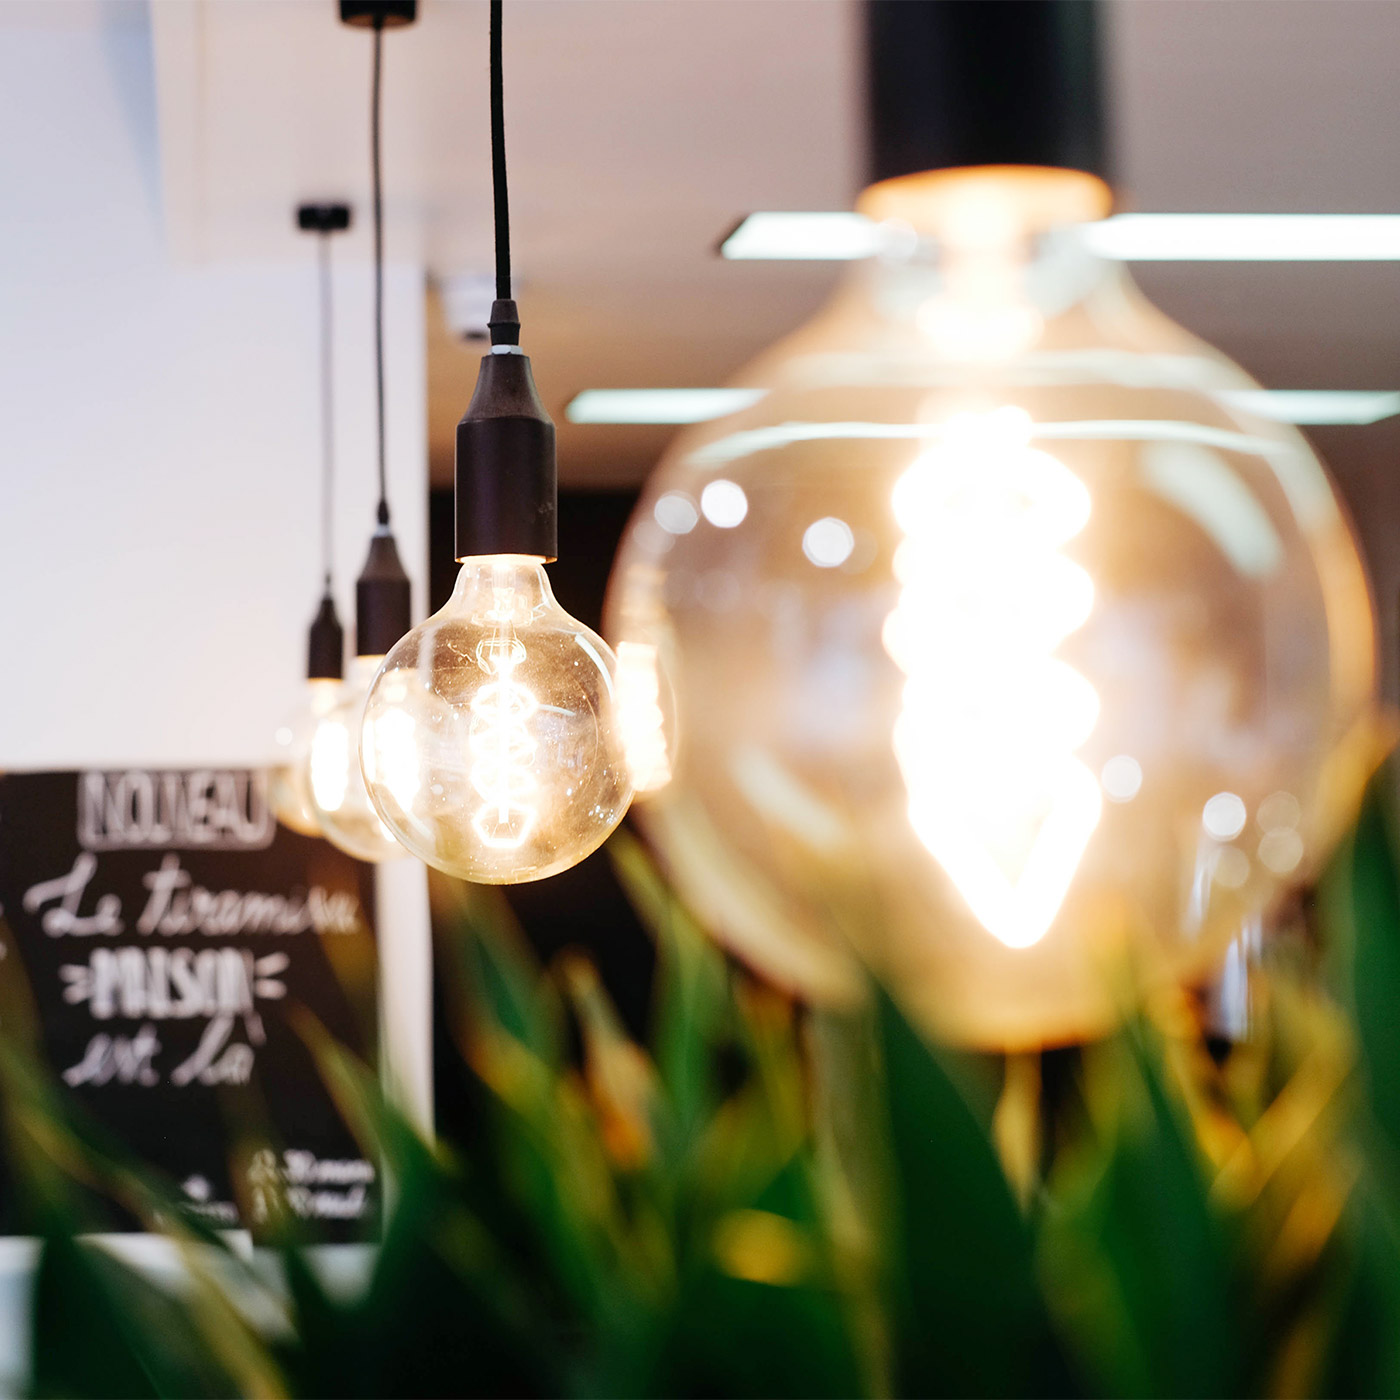 Lighting sector PR and content consultancy